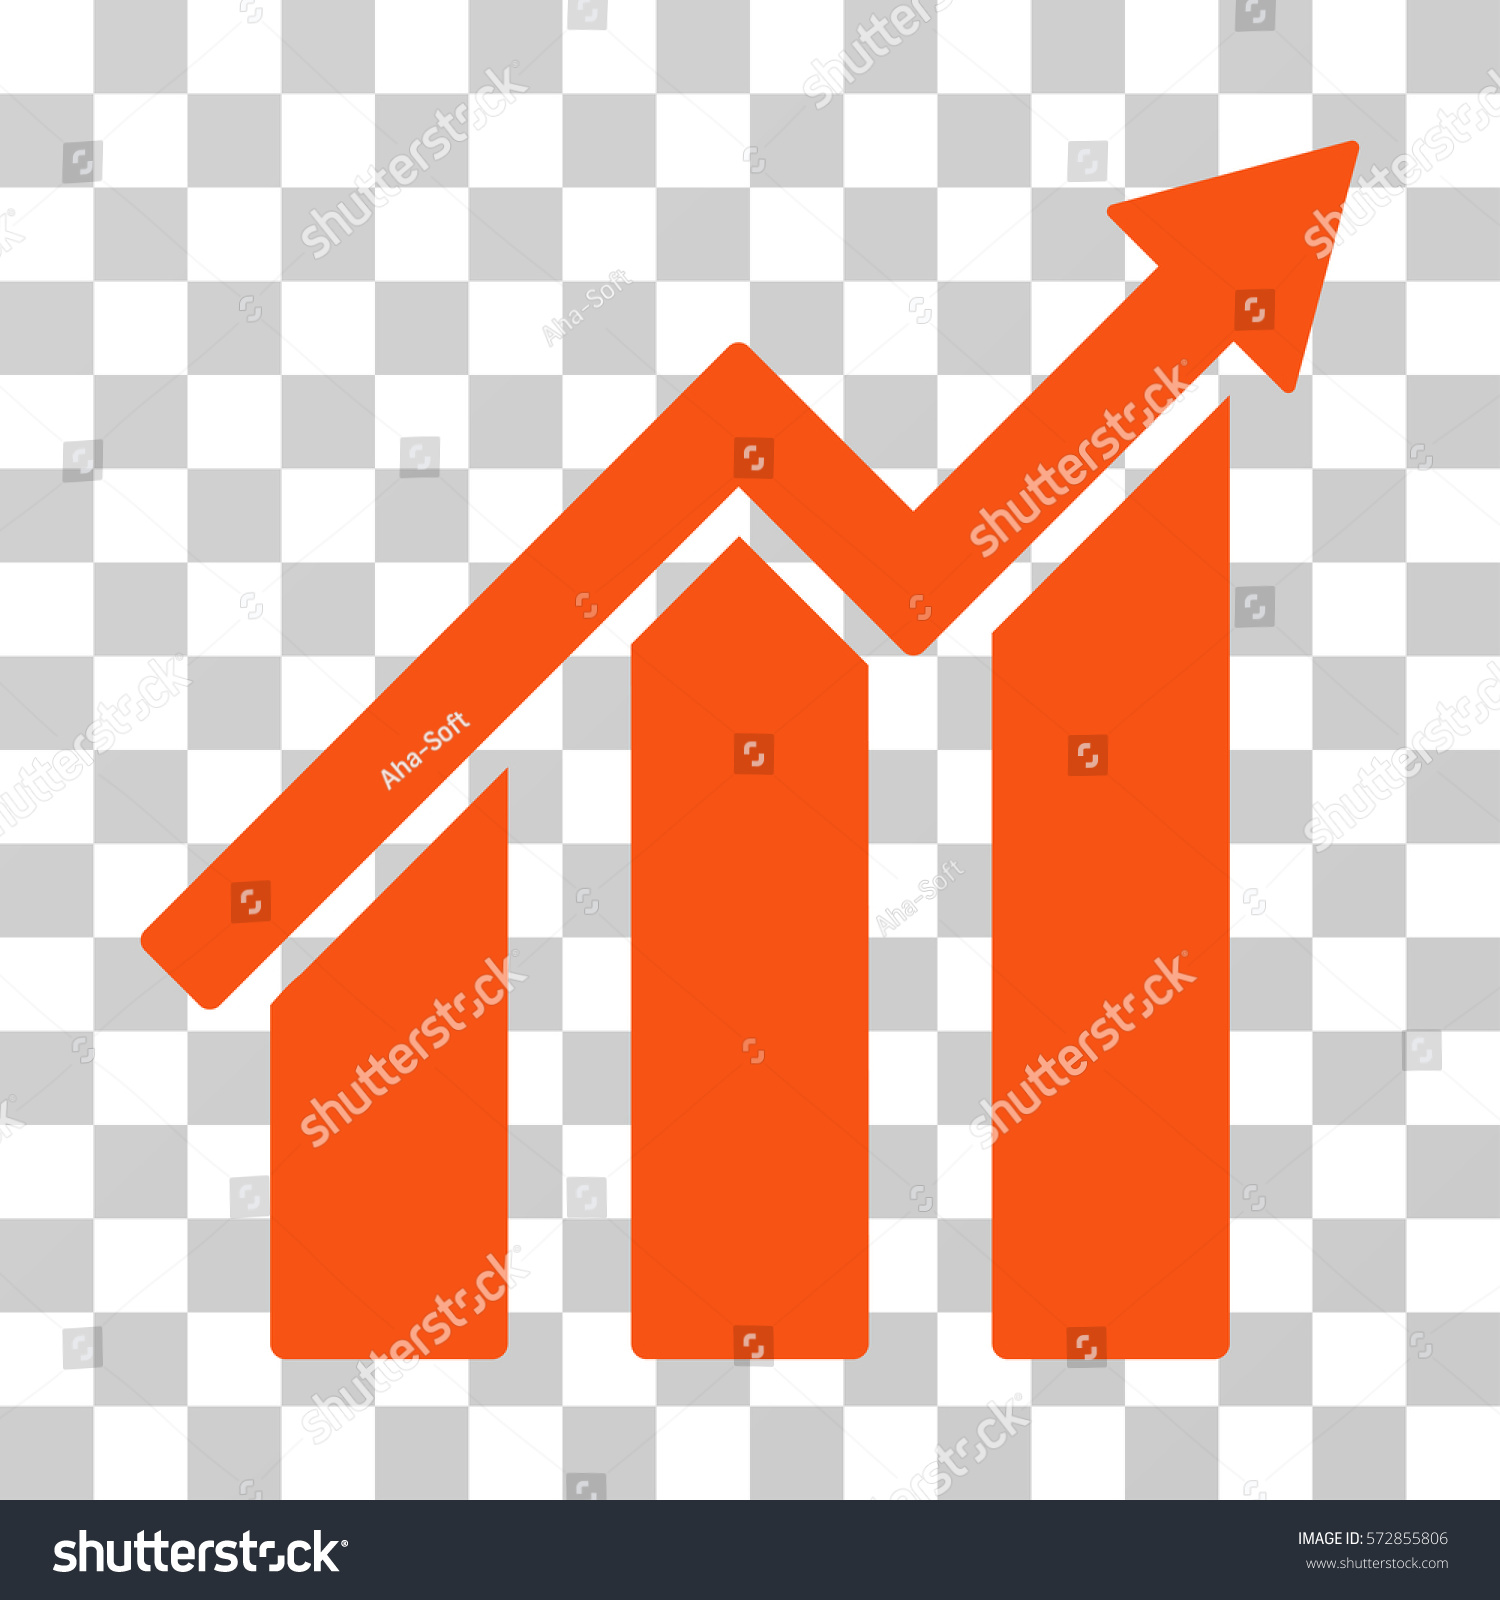 Orange color chart gallery free any chart examples growth chart icon vector illustration style stock vector 572855806 growth chart icon vector illustration style is nvjuhfo Choice Image